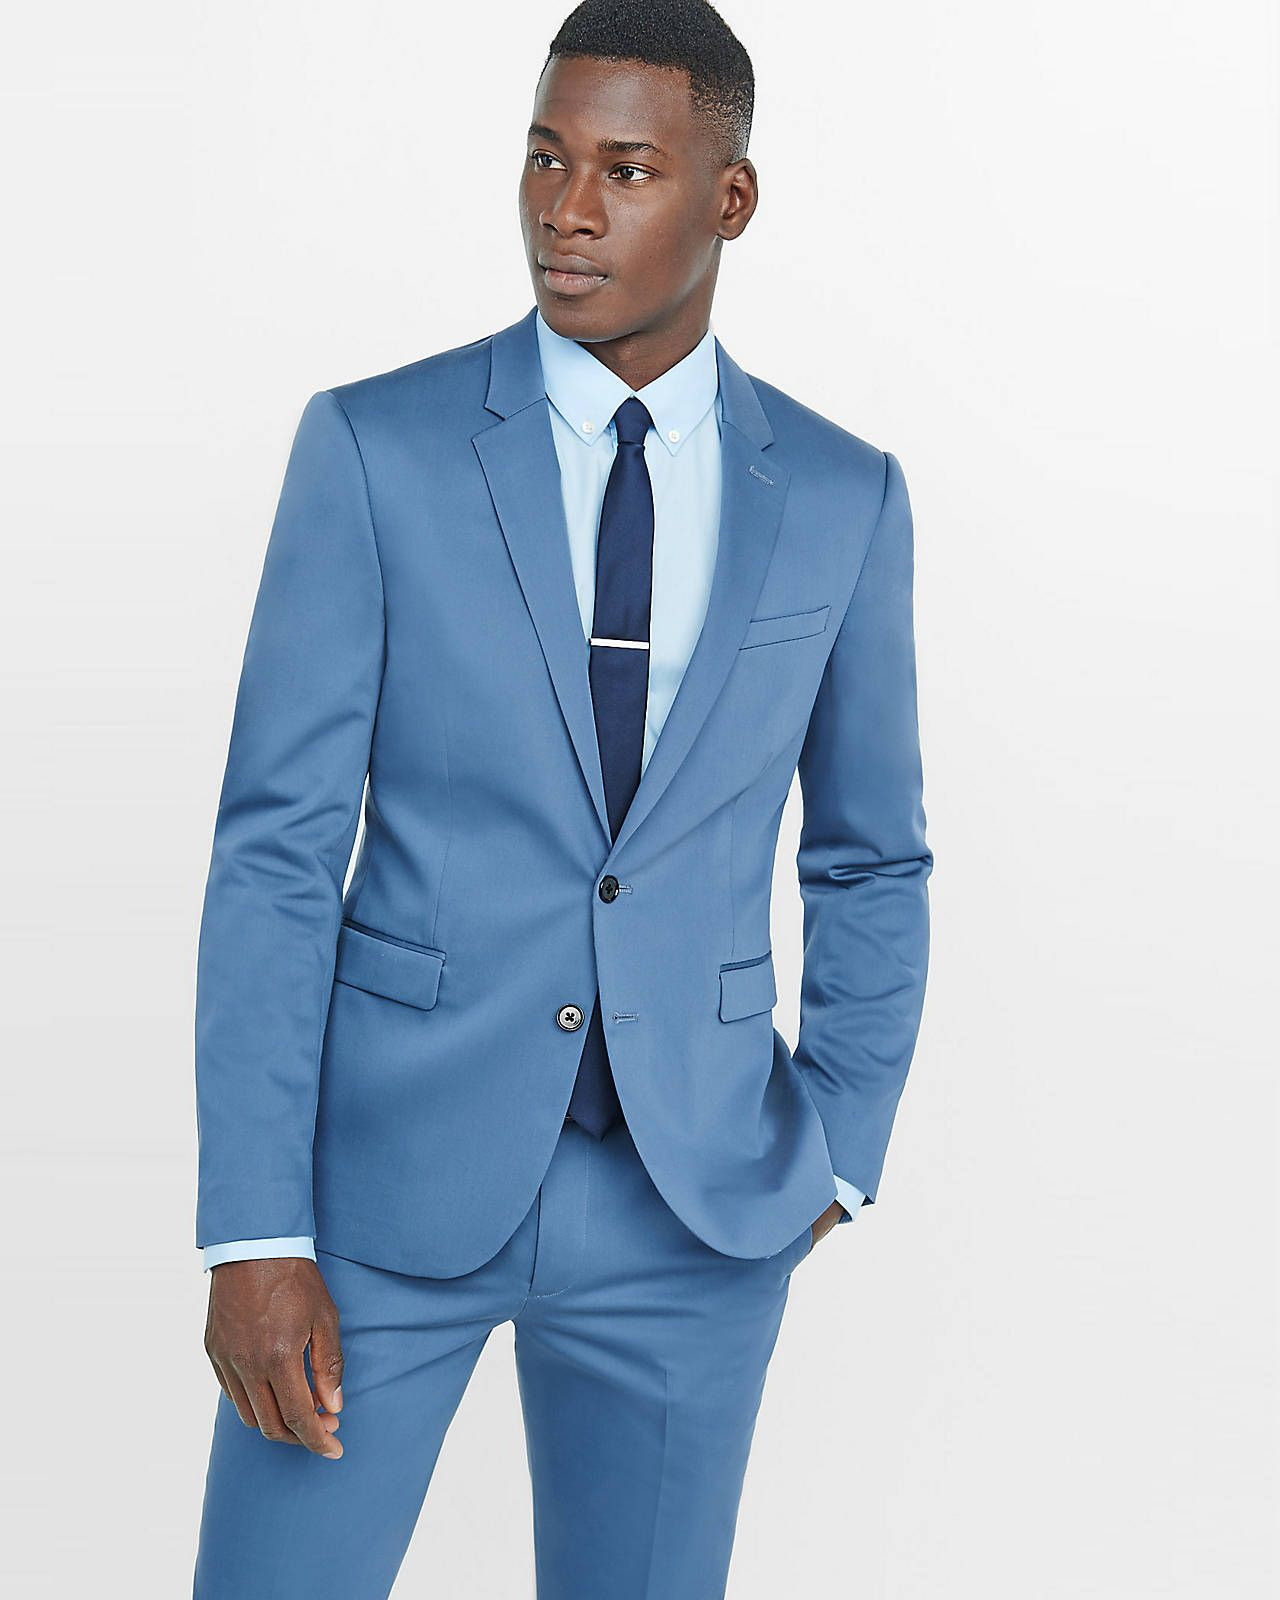 Men\'s Wedding Style Guide: Express\' Classic Looks | Mens wedding ...